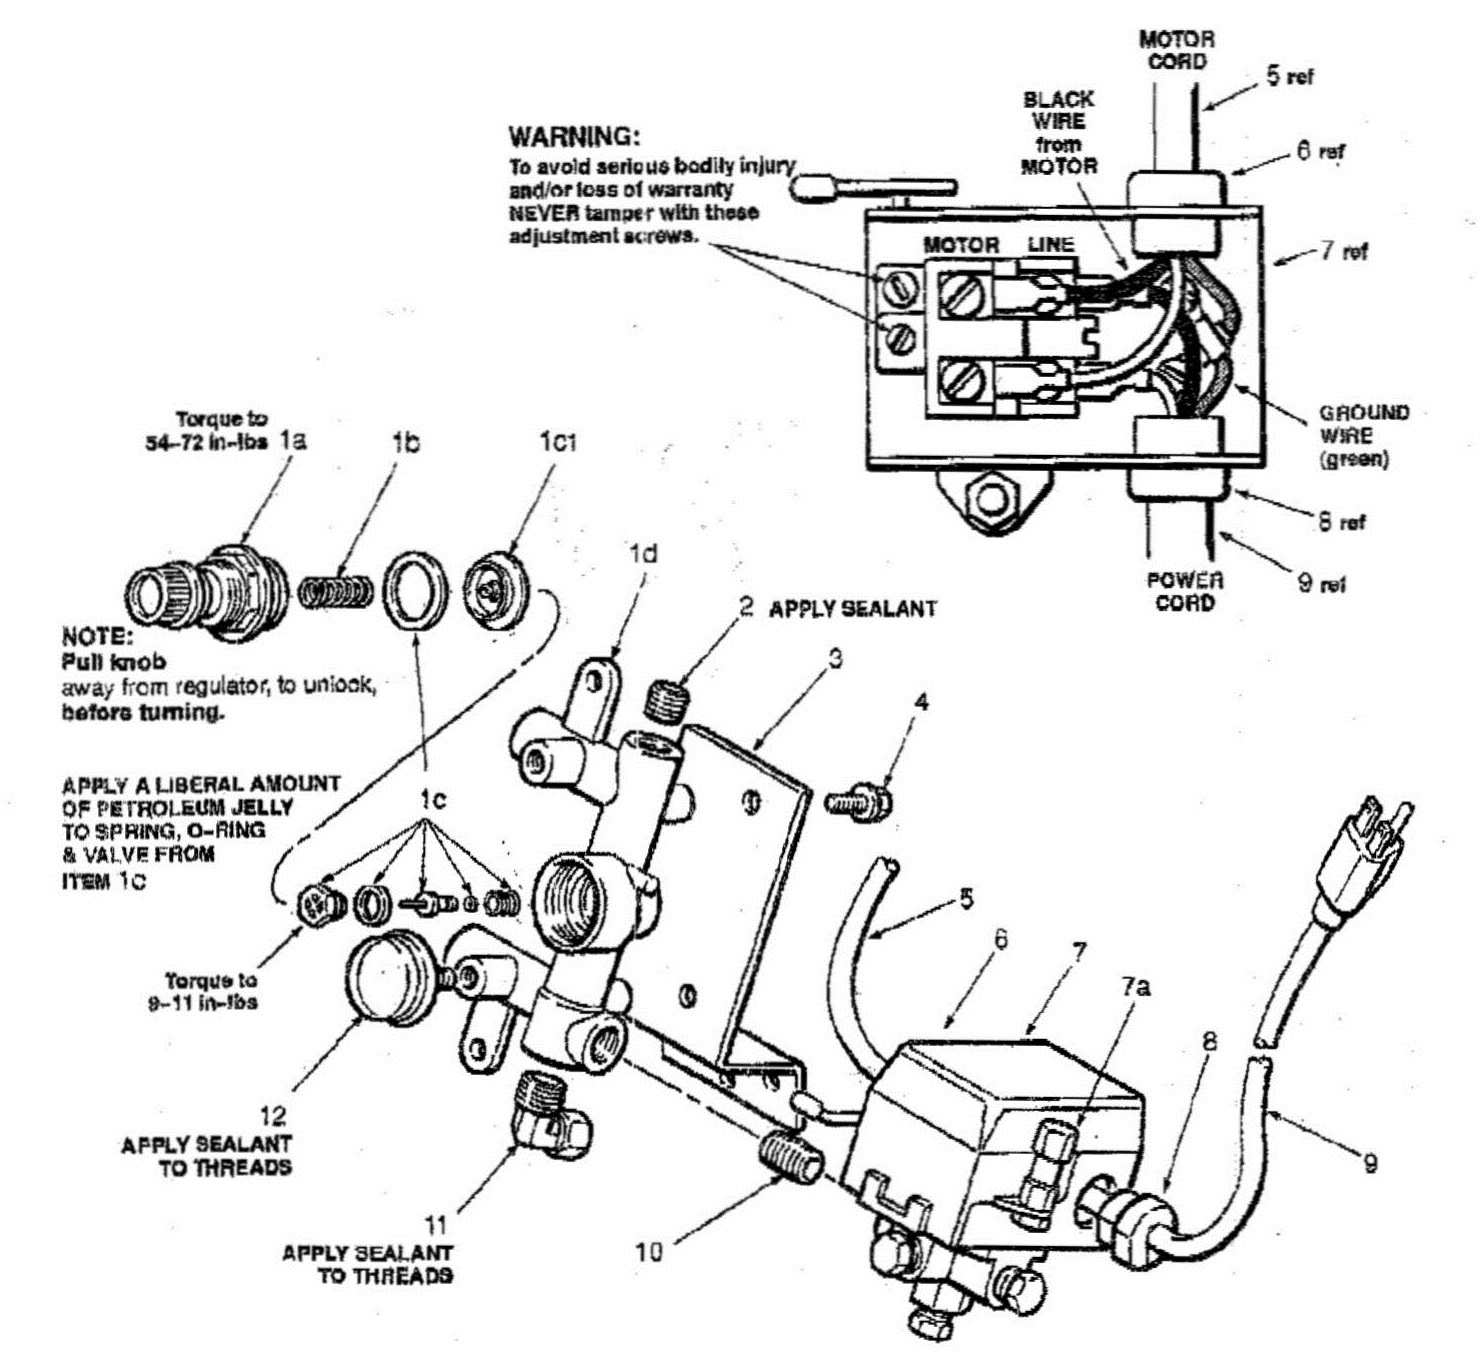 Sanborn Air Compressor Motors Wiring Diagram Simple For Craftsman Pumps New Coleman Powermate Pump Have A